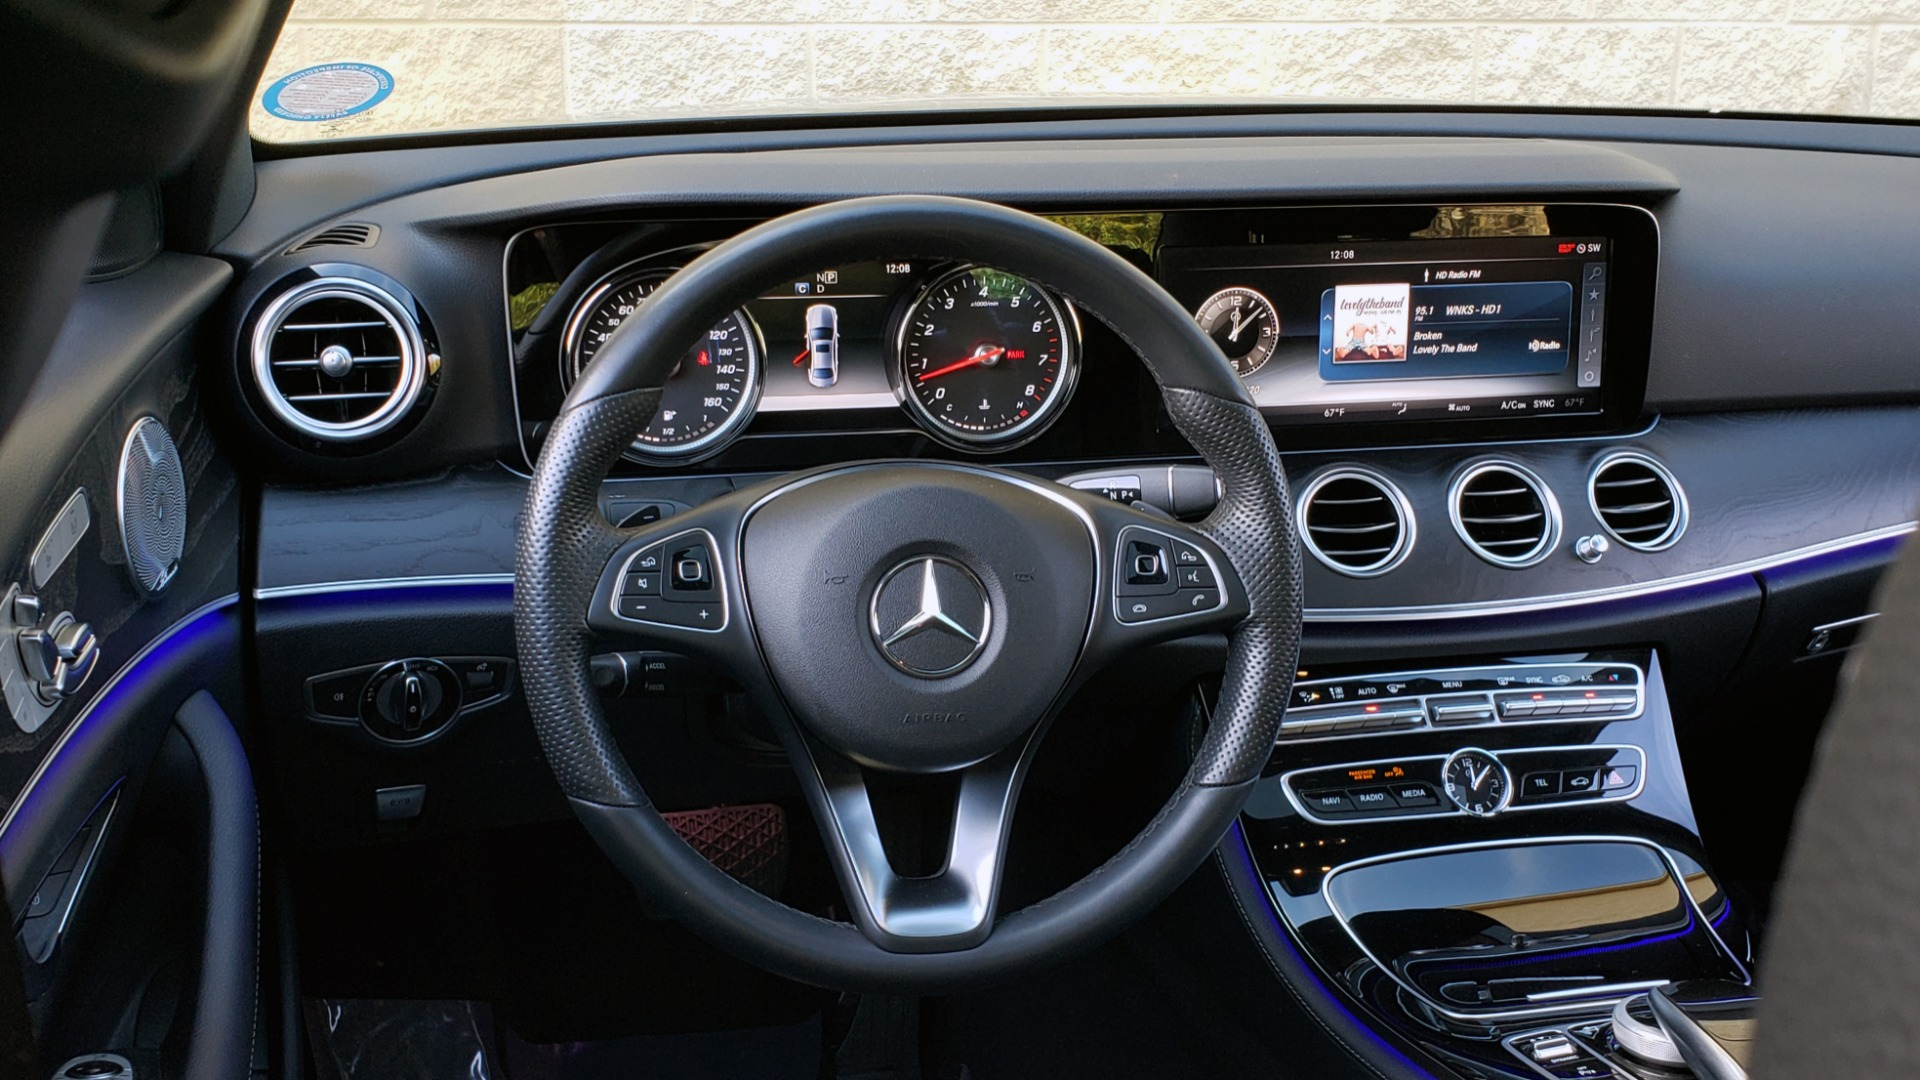 Used 2017 Mercedes-Benz E-CLASS E 300 PREMIUM / NAV / SUNROOF / BURMESTER / HTD STS / REARVIEW for sale Sold at Formula Imports in Charlotte NC 28227 40